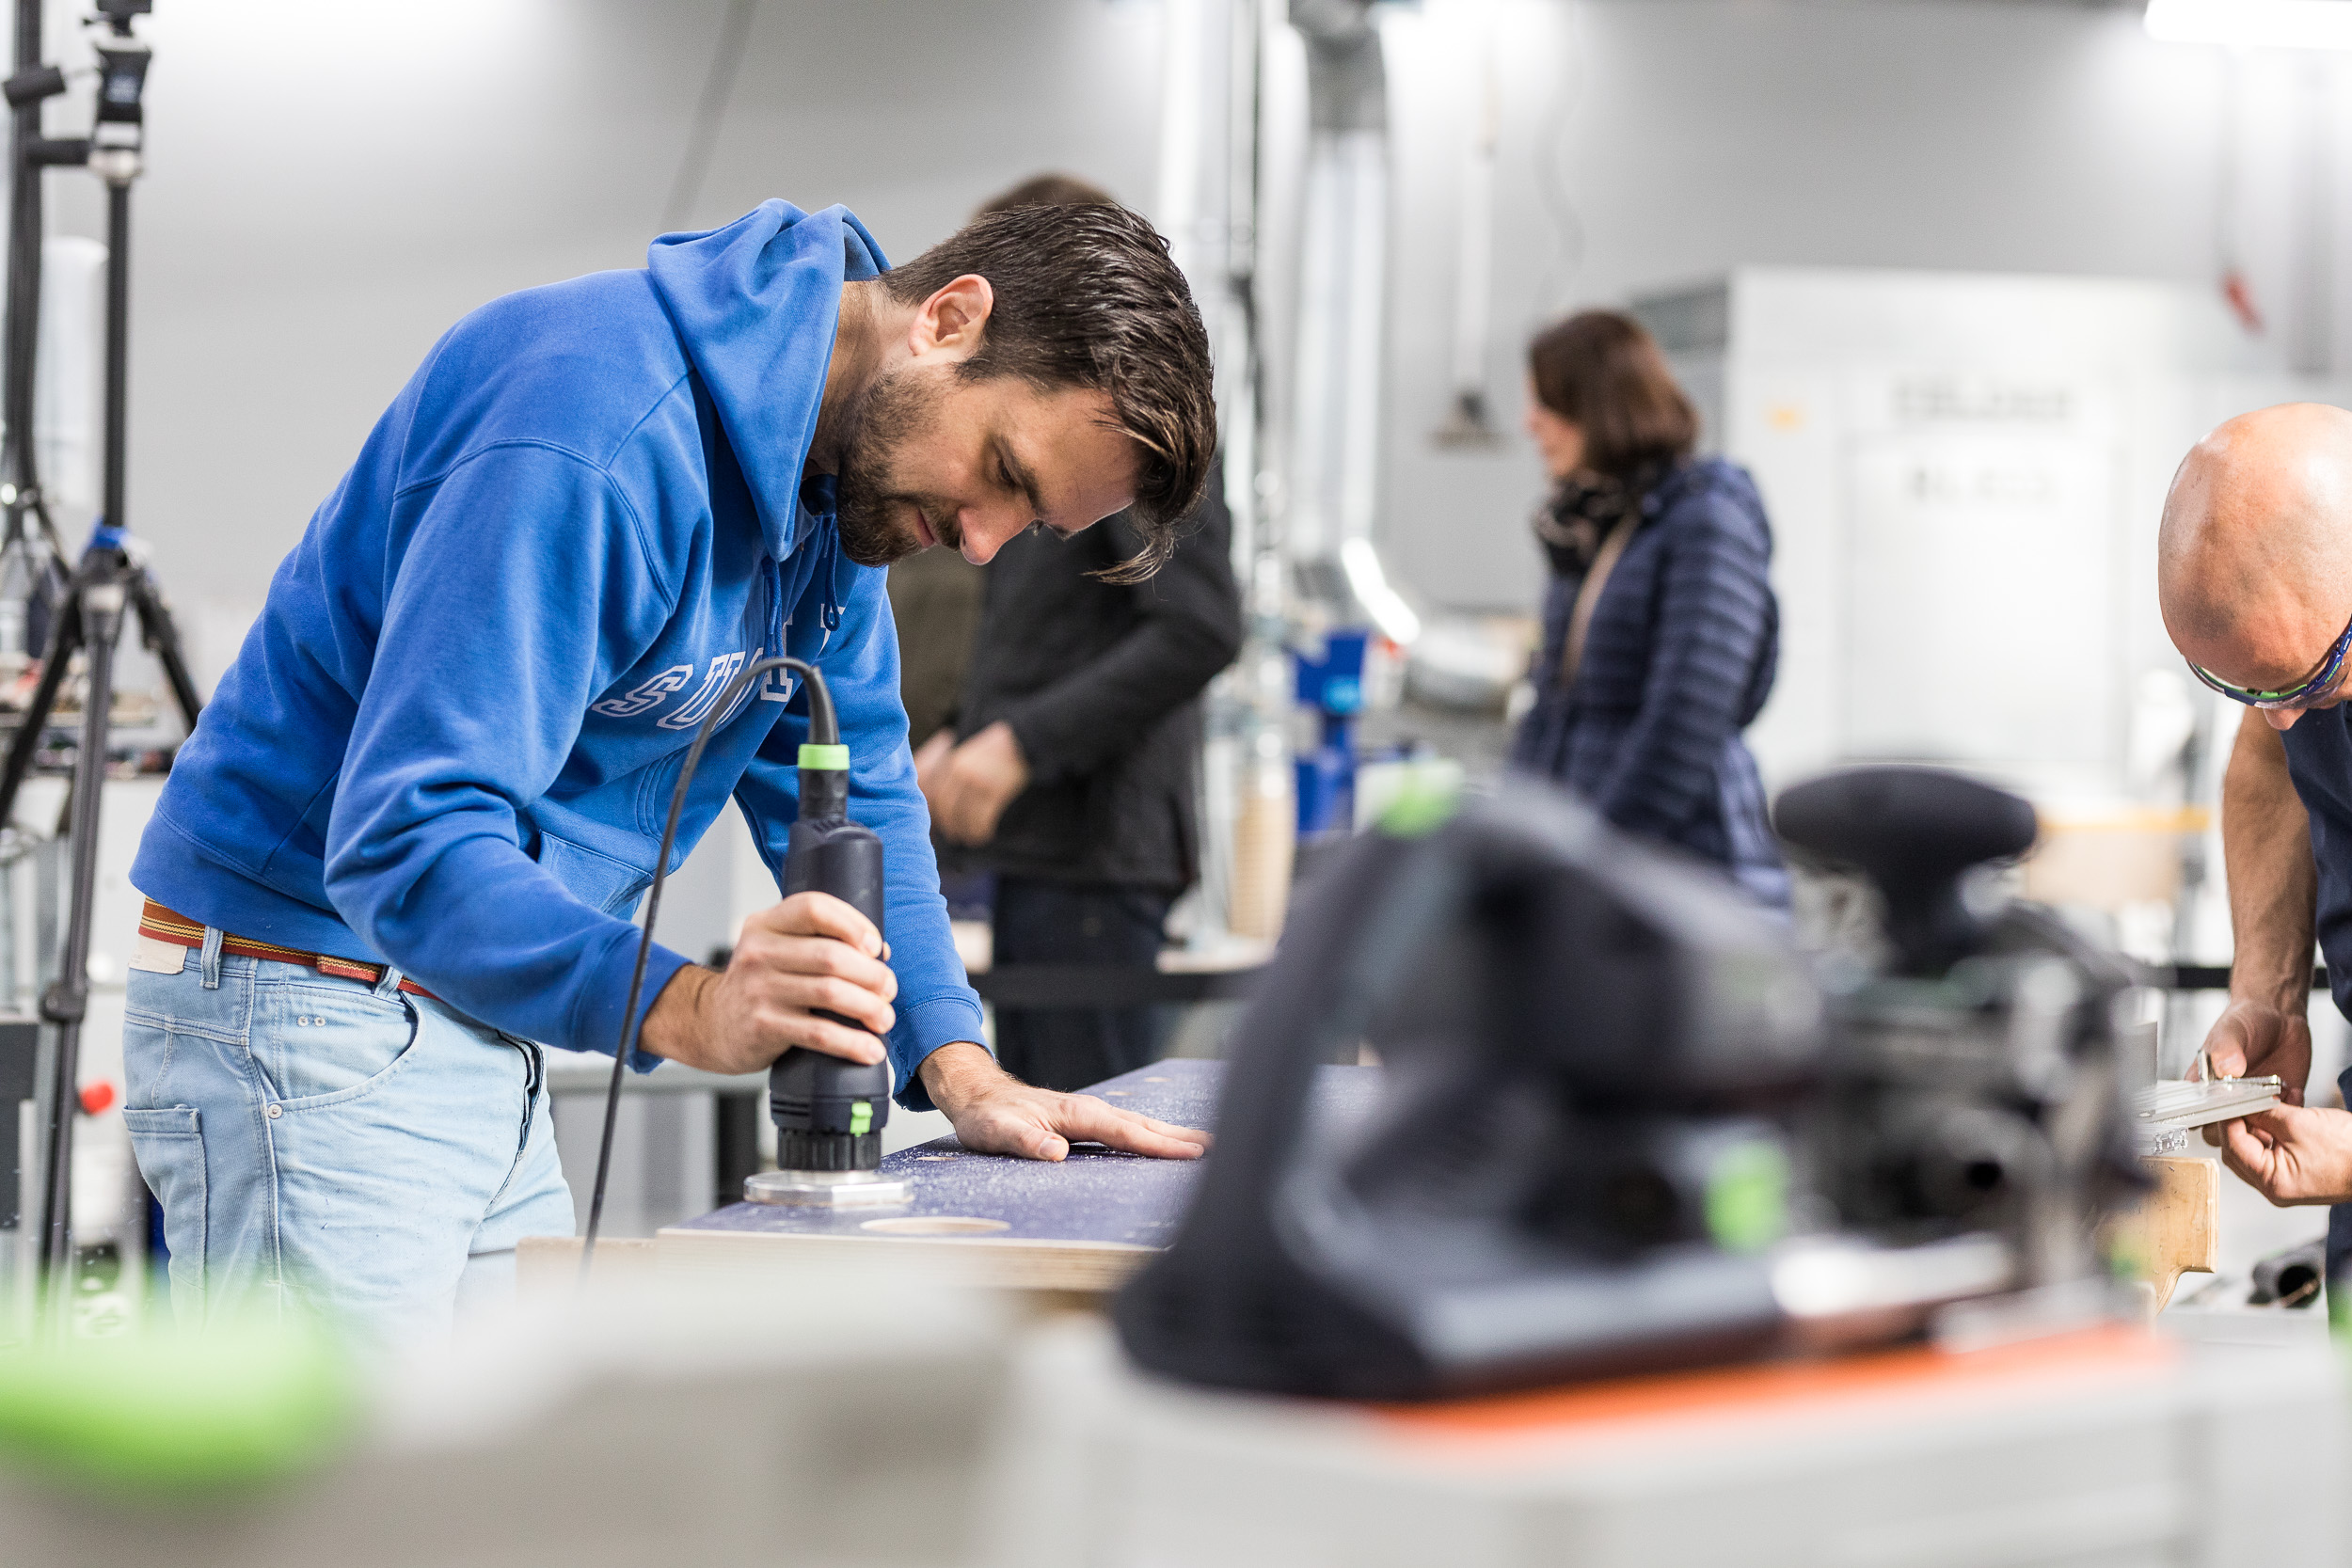 Prototyping workspaces - Fablab and makerspace for prototyping and small batch productions, packed with technology, professional machinery and experts to help bring your idea to life.